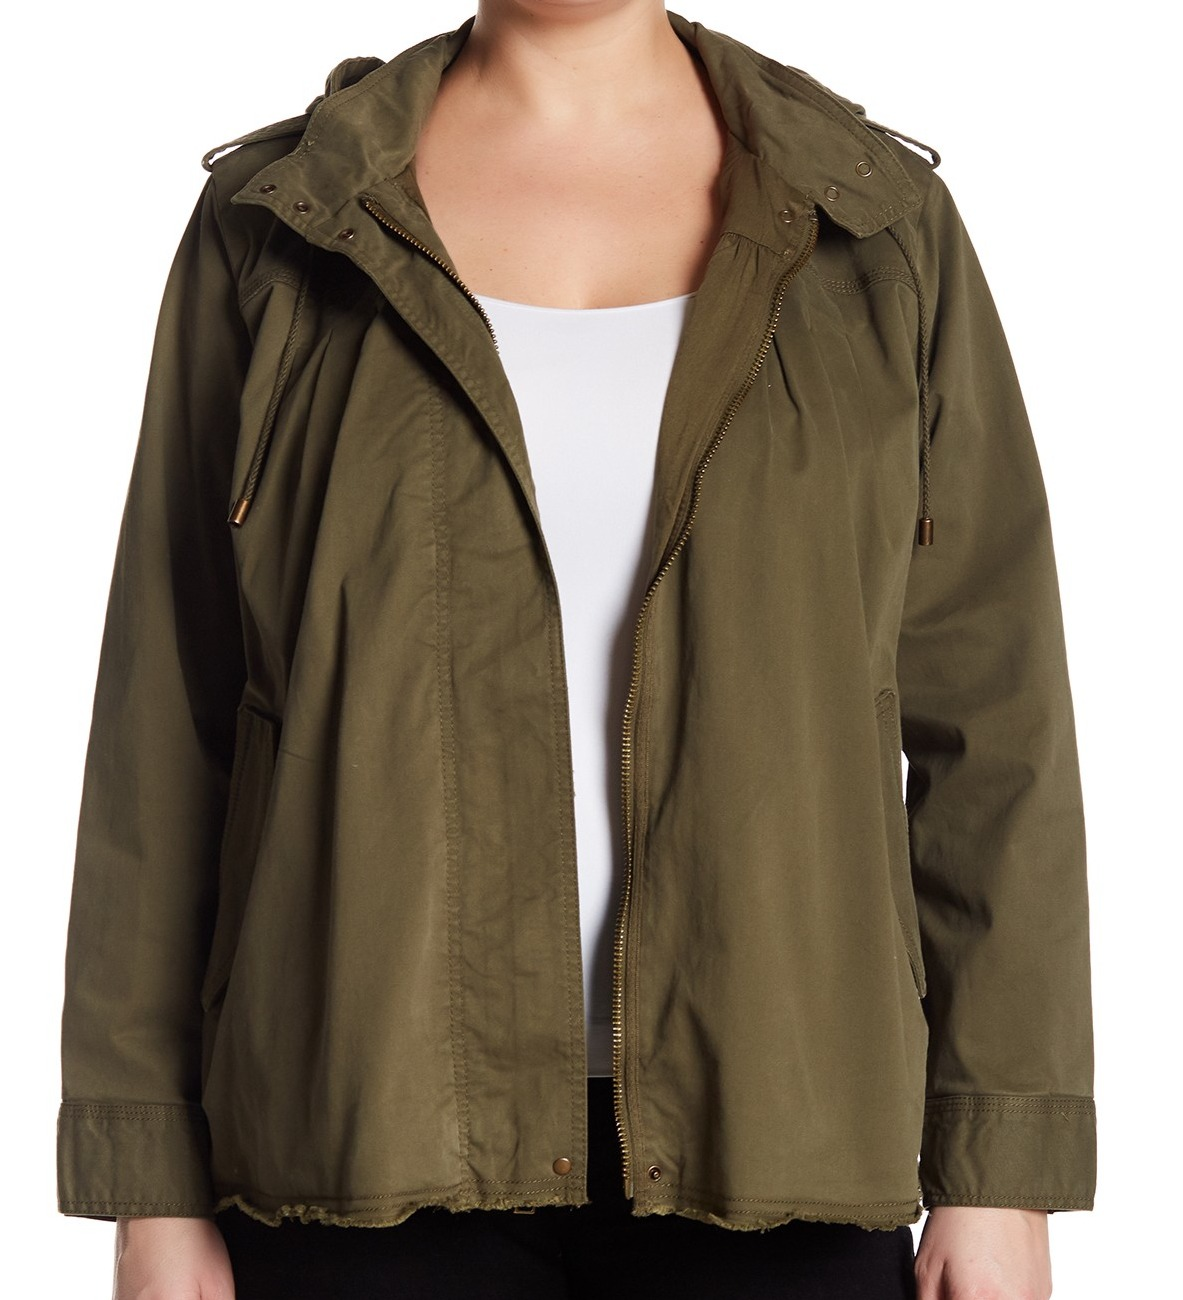 f404d75cb76 Details about Lucky Brand NEW Green Olive Women s 1X Plus Raw Hem Military  Jacket  139  234